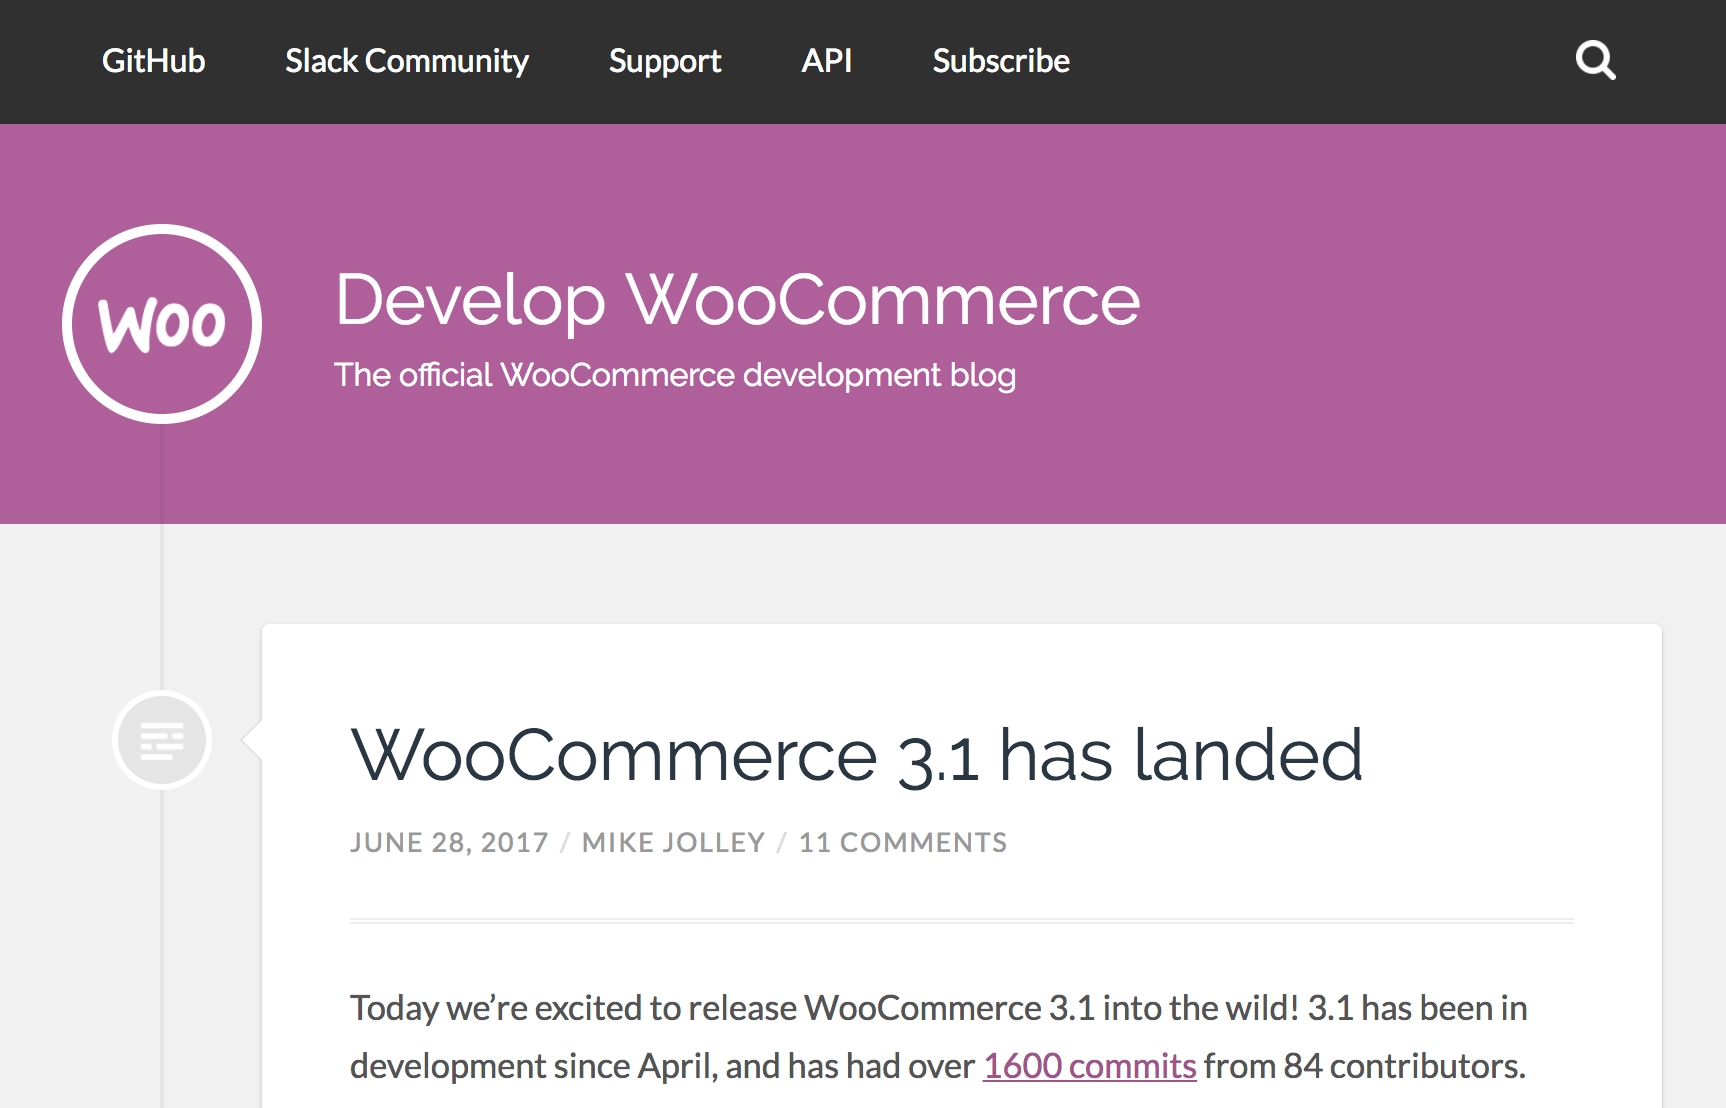 Develop WooCommerce blog